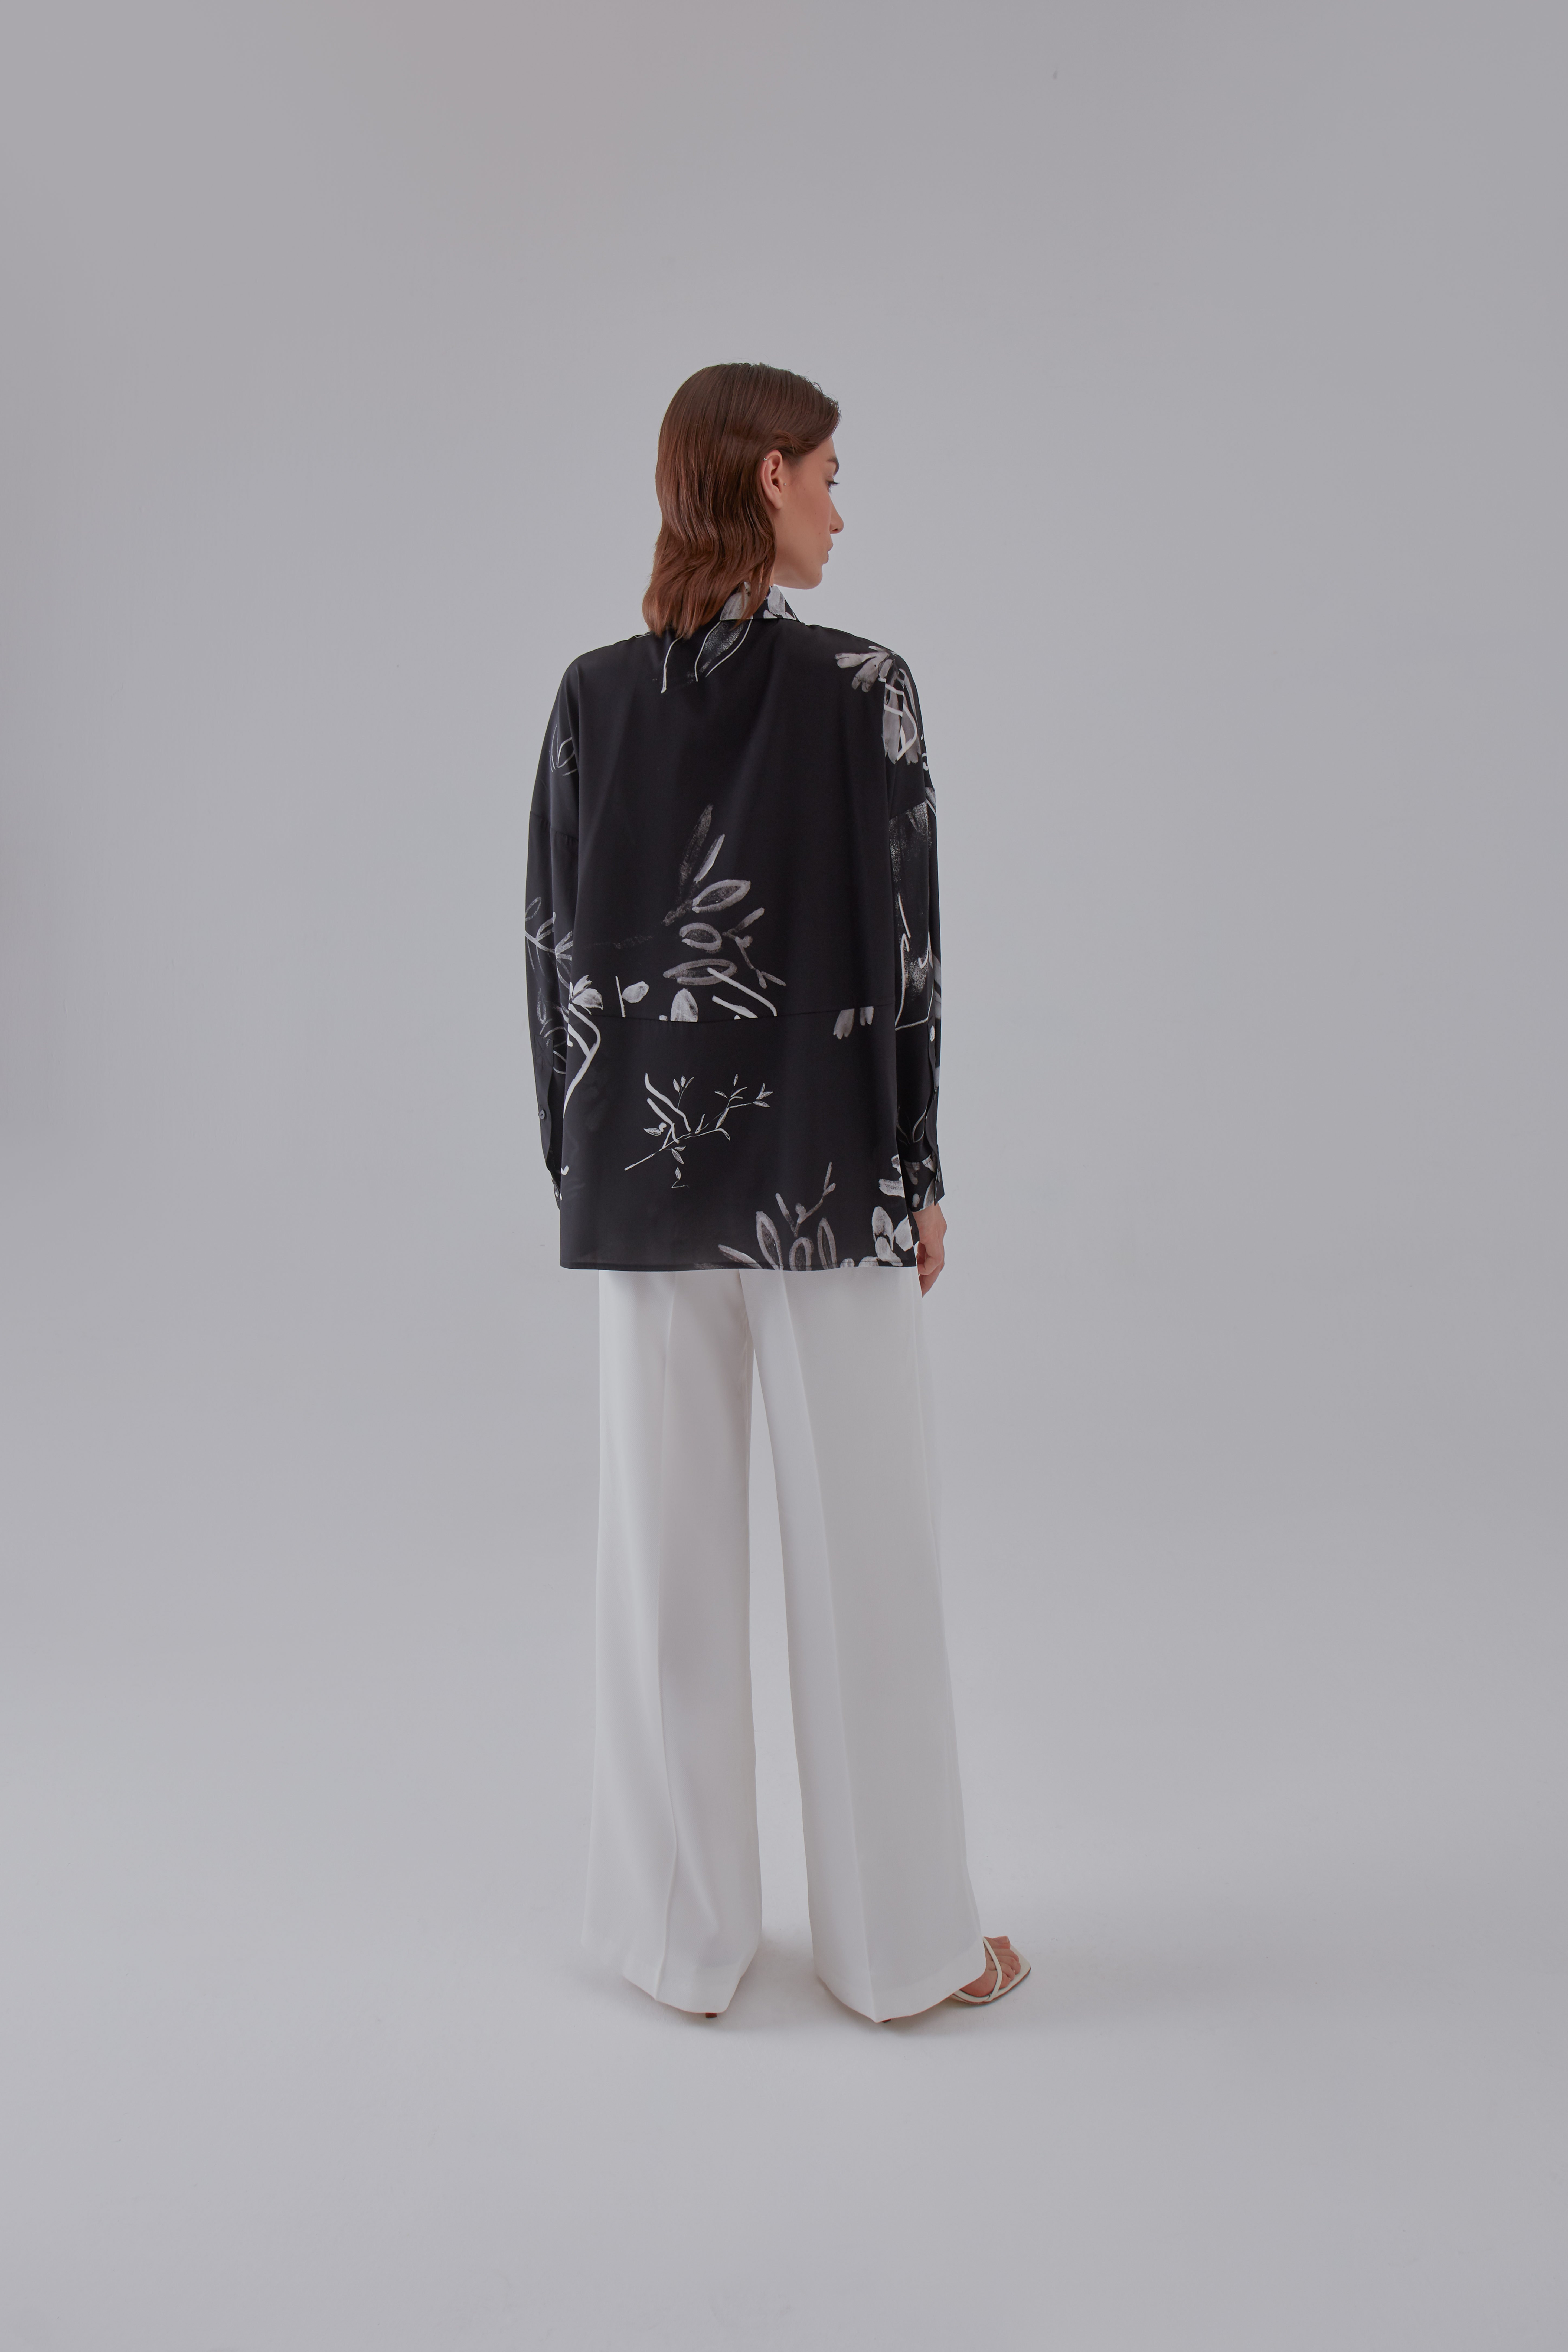 Subtle Shirt - Black by Laika on curated-crowd.com